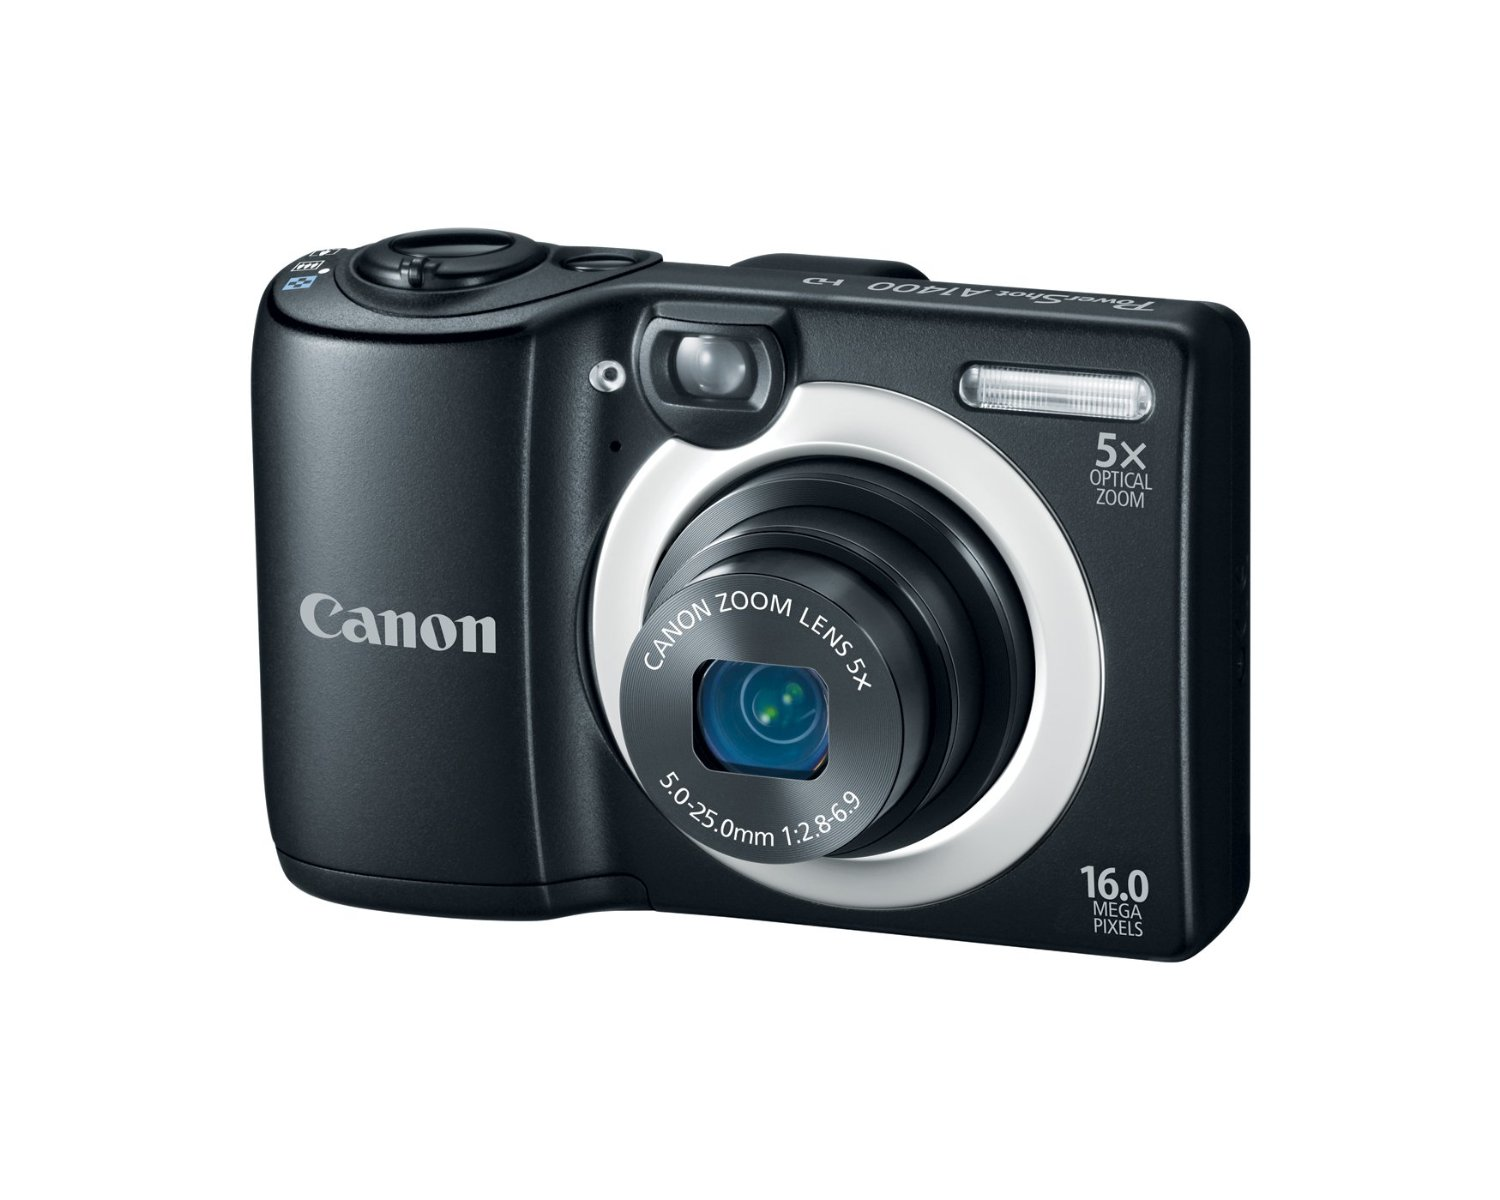 The Best Shopping For You | Canon PowerShot A1400 16.0 MP ...